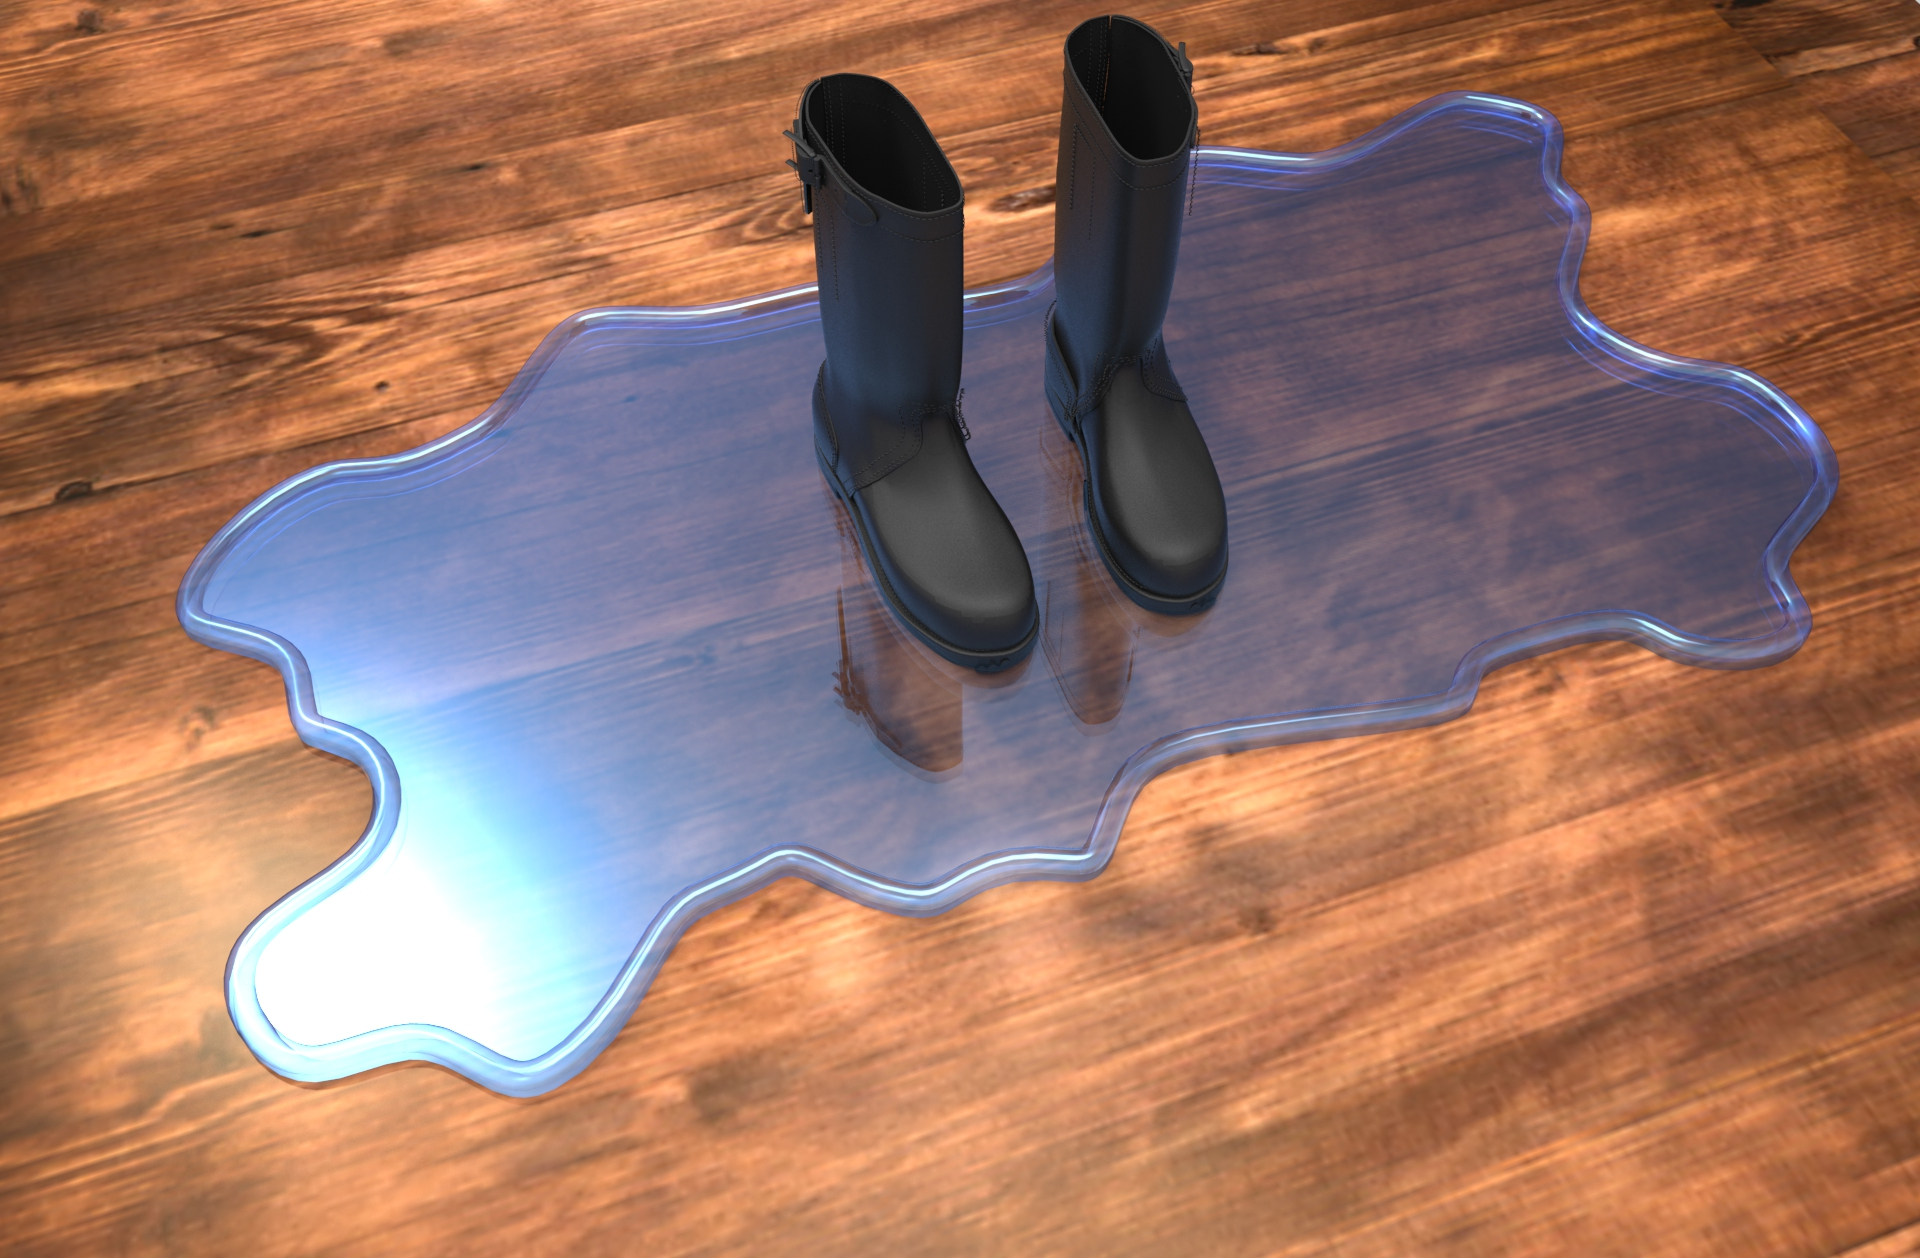 Puddle Tray for Bed Bath & Beyond/Kikkerland - Refinery29Dutch Culture USA